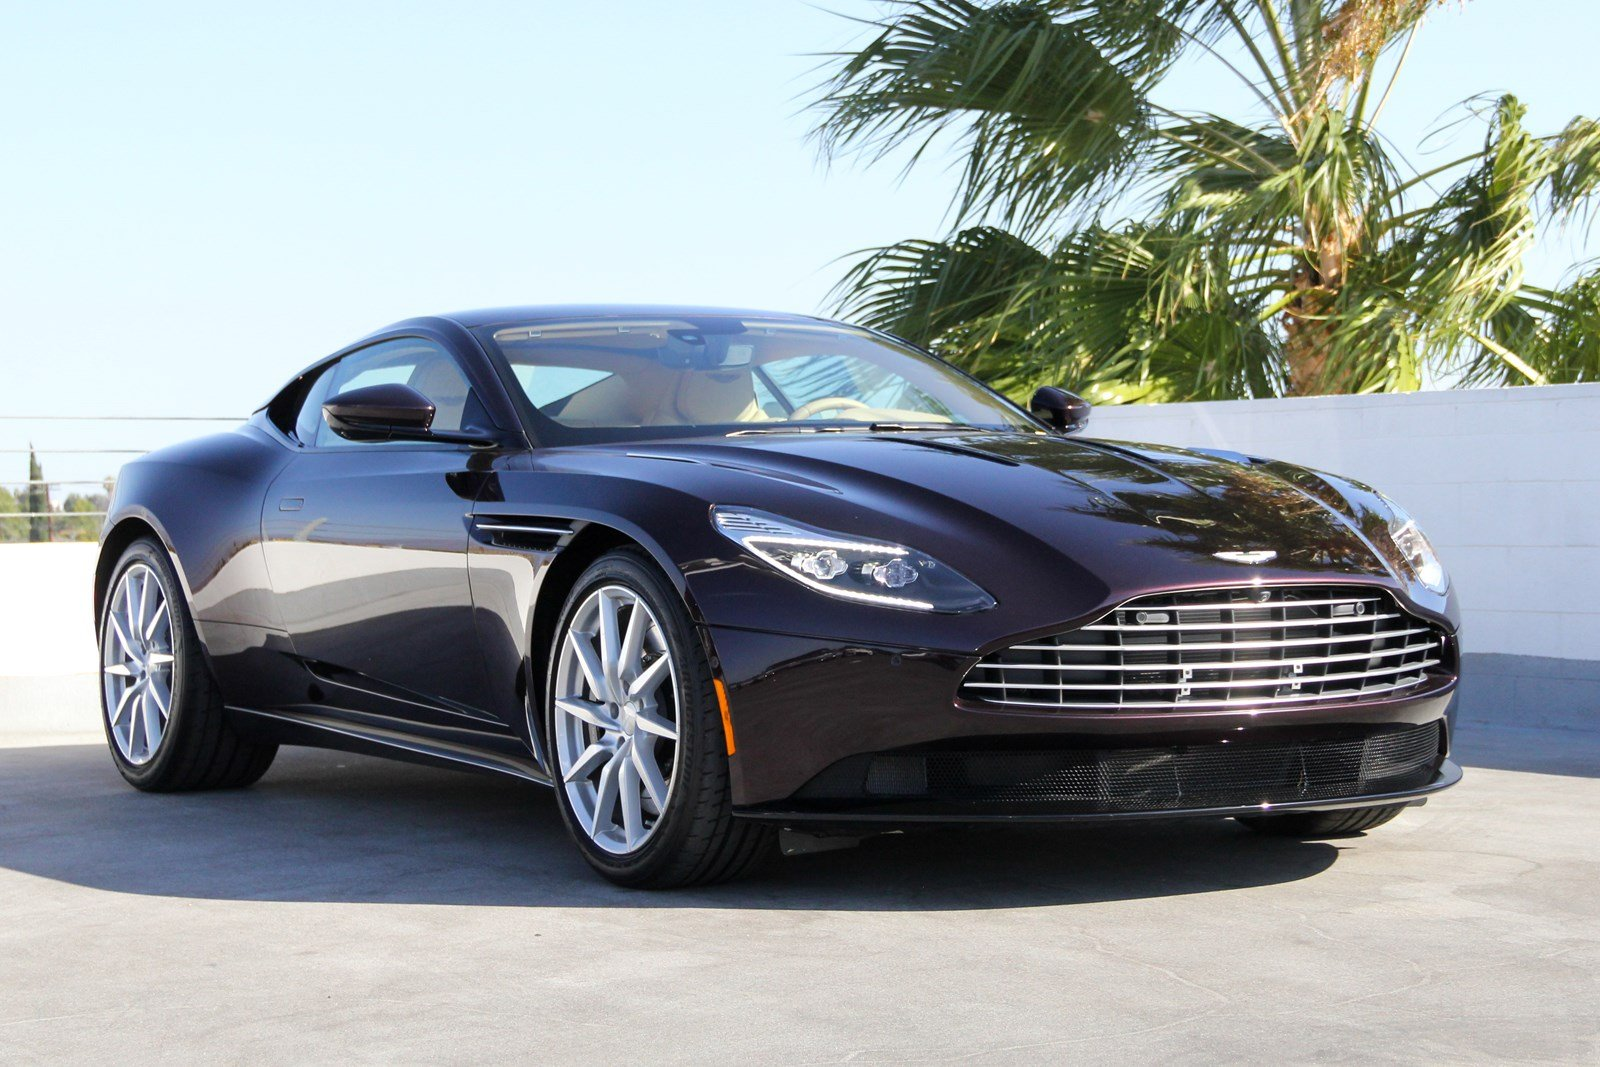 Galpin Aston Martin Los Angeles Aston Martin Special Offers Van